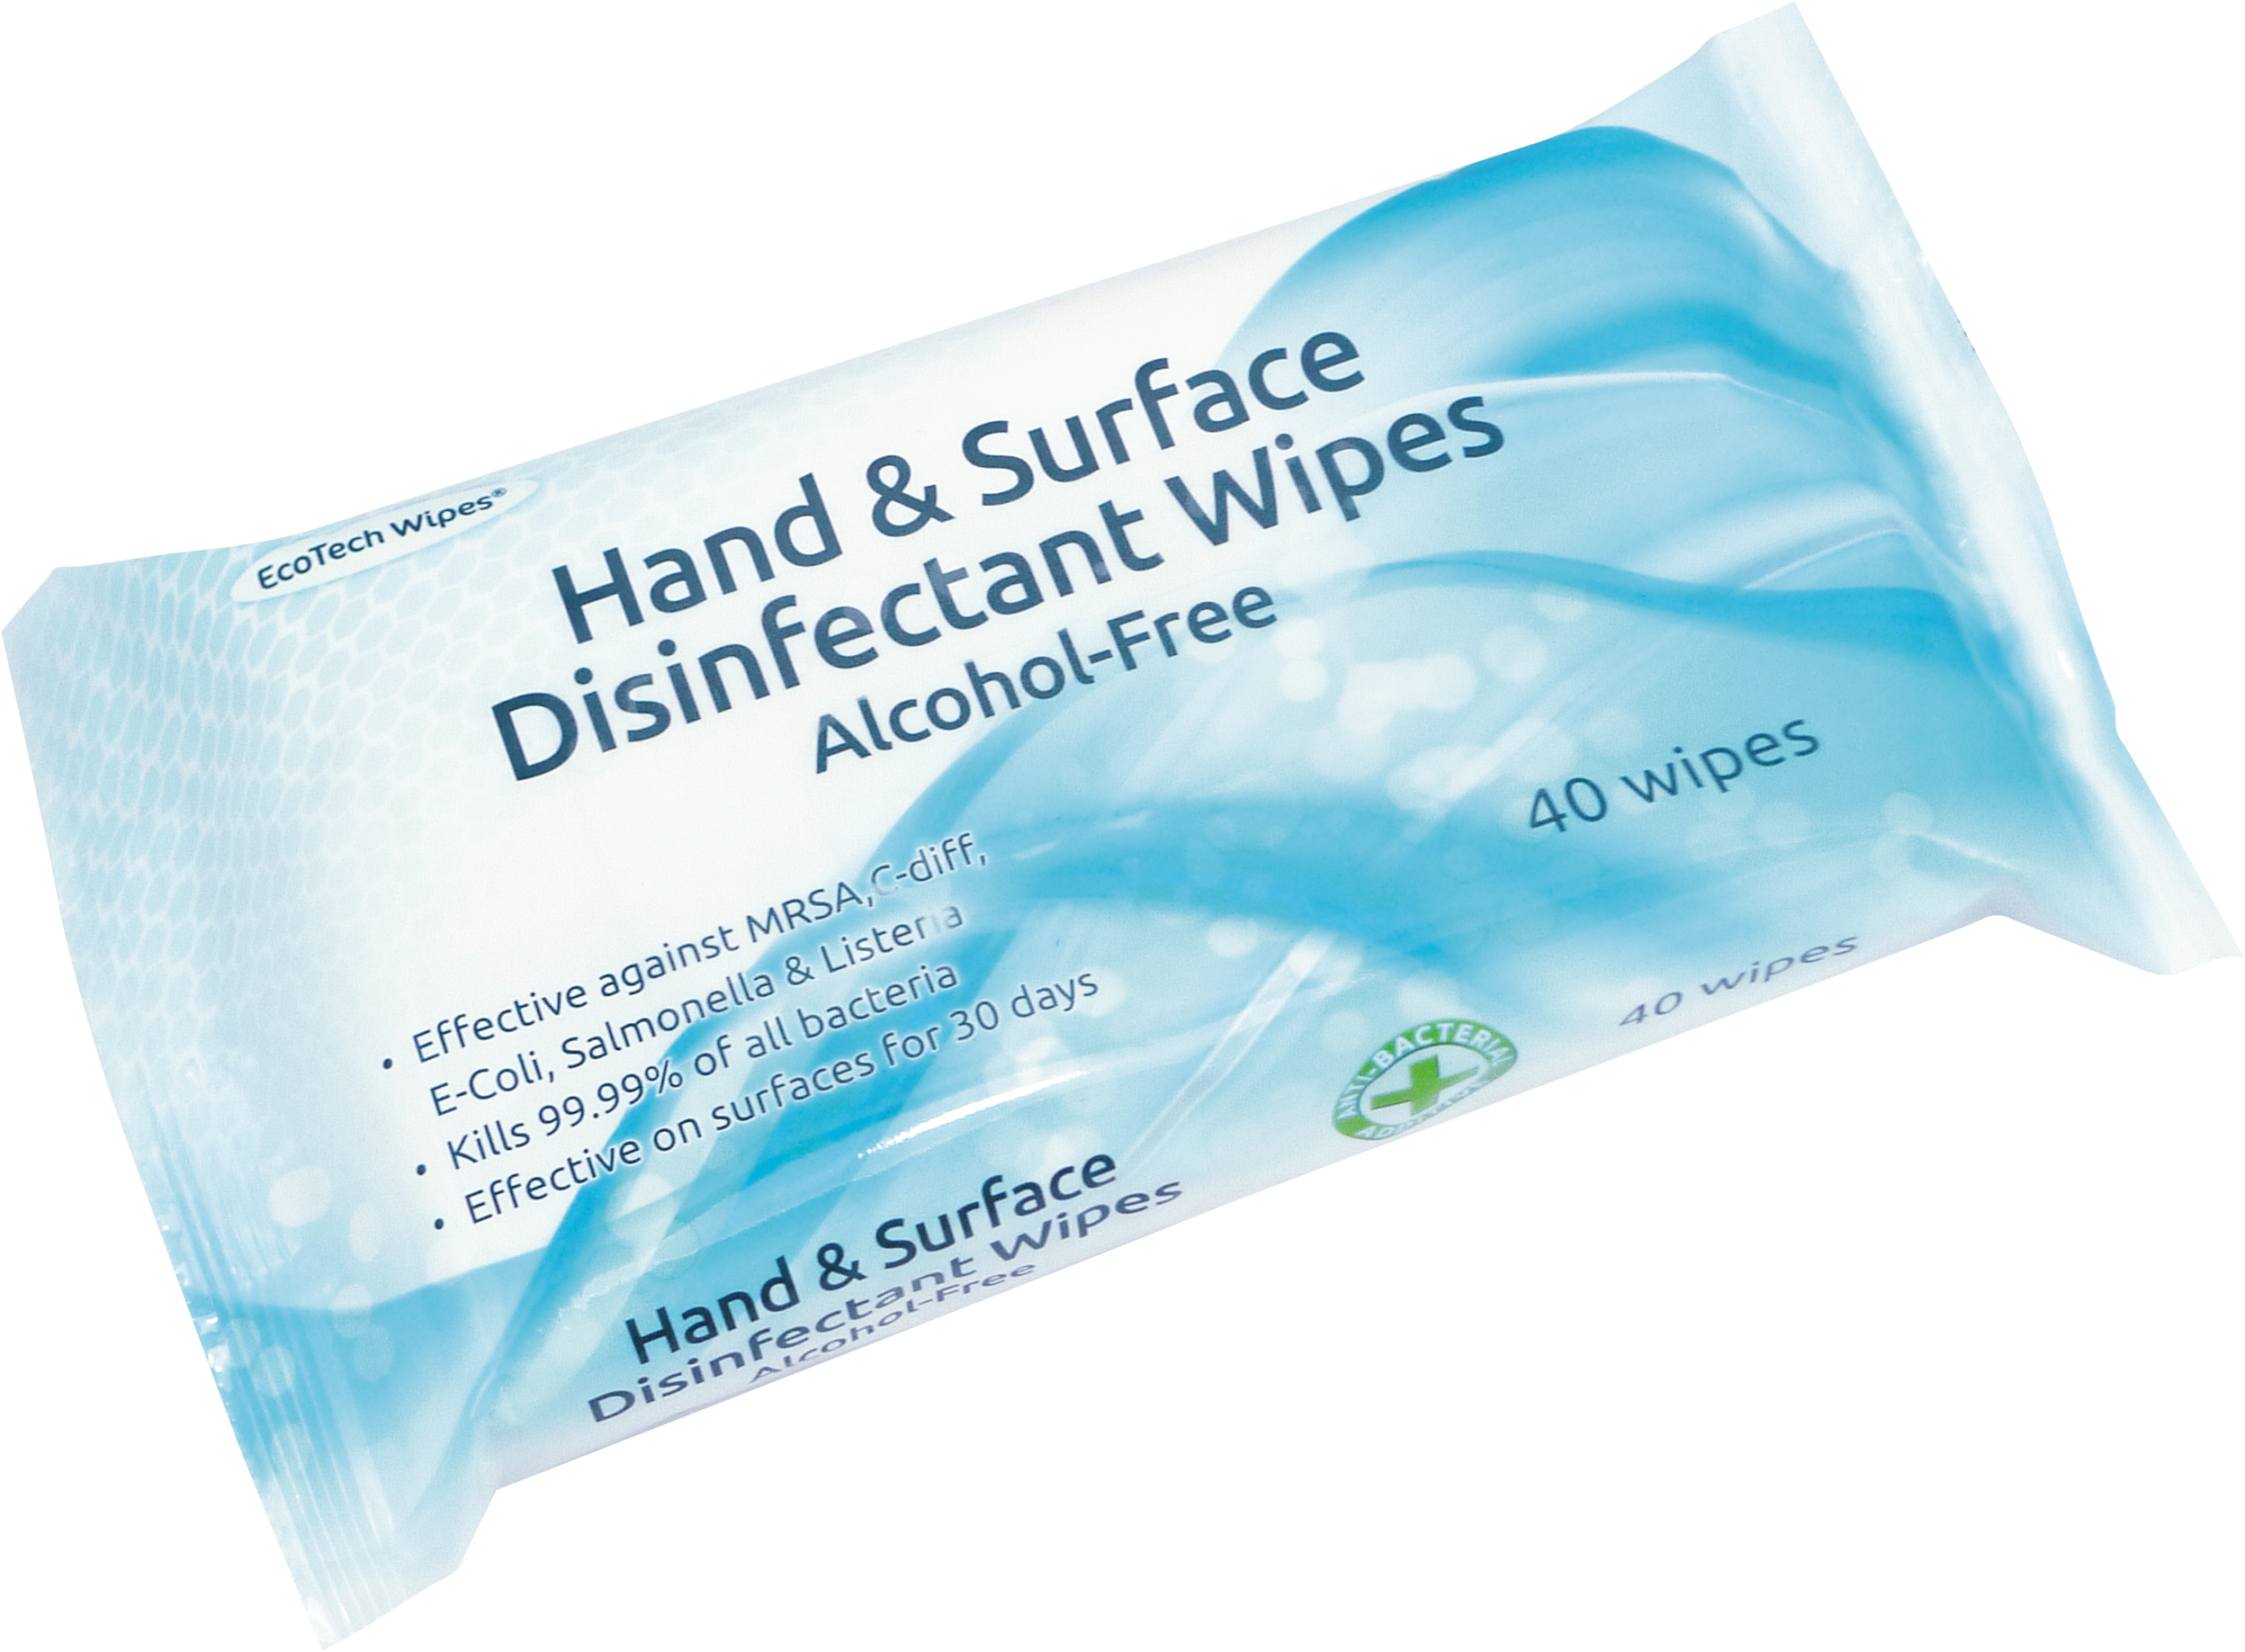 Alcohol Free Hand and Surface Disinfectant Wipes thumbnail image 1